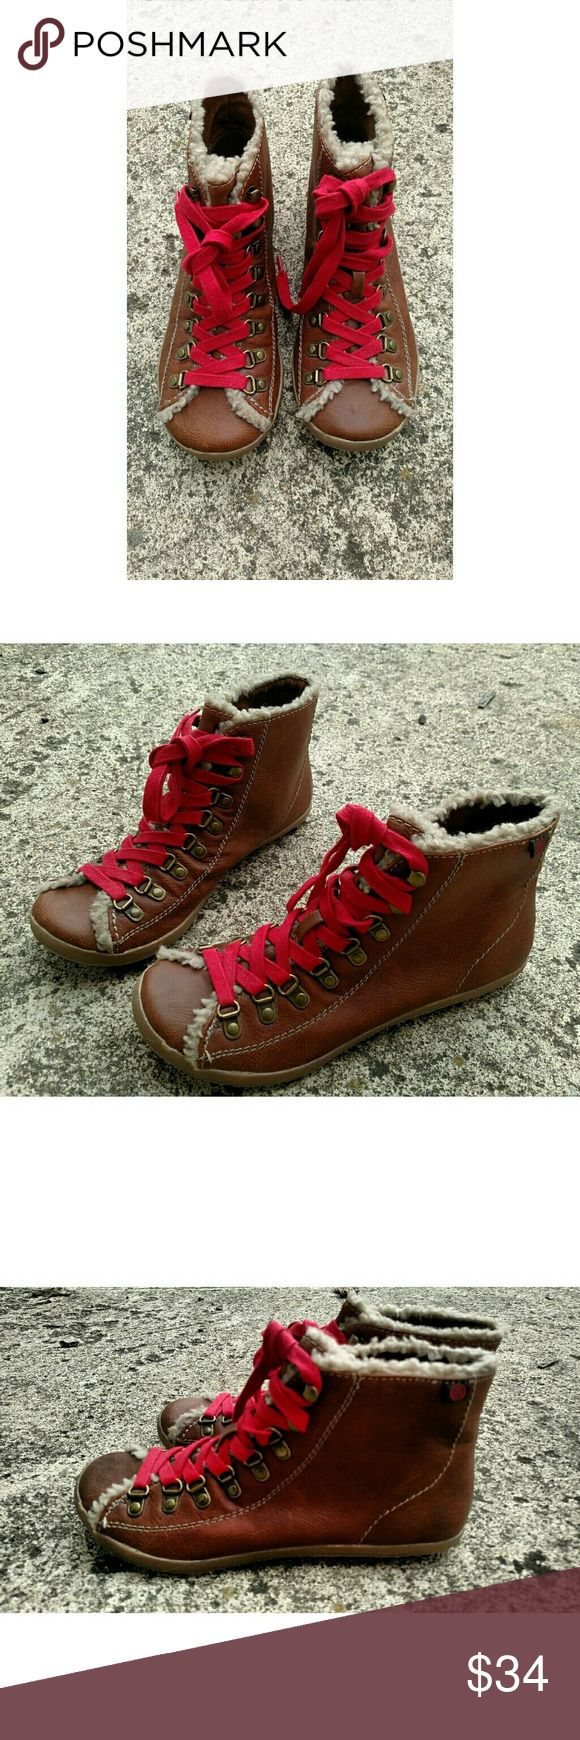 Big Buddha Gust booties. Size 7.5 Worn once, like new condition!. Size 7.5 Big Buddha Shoes Ankle Boots & Booties